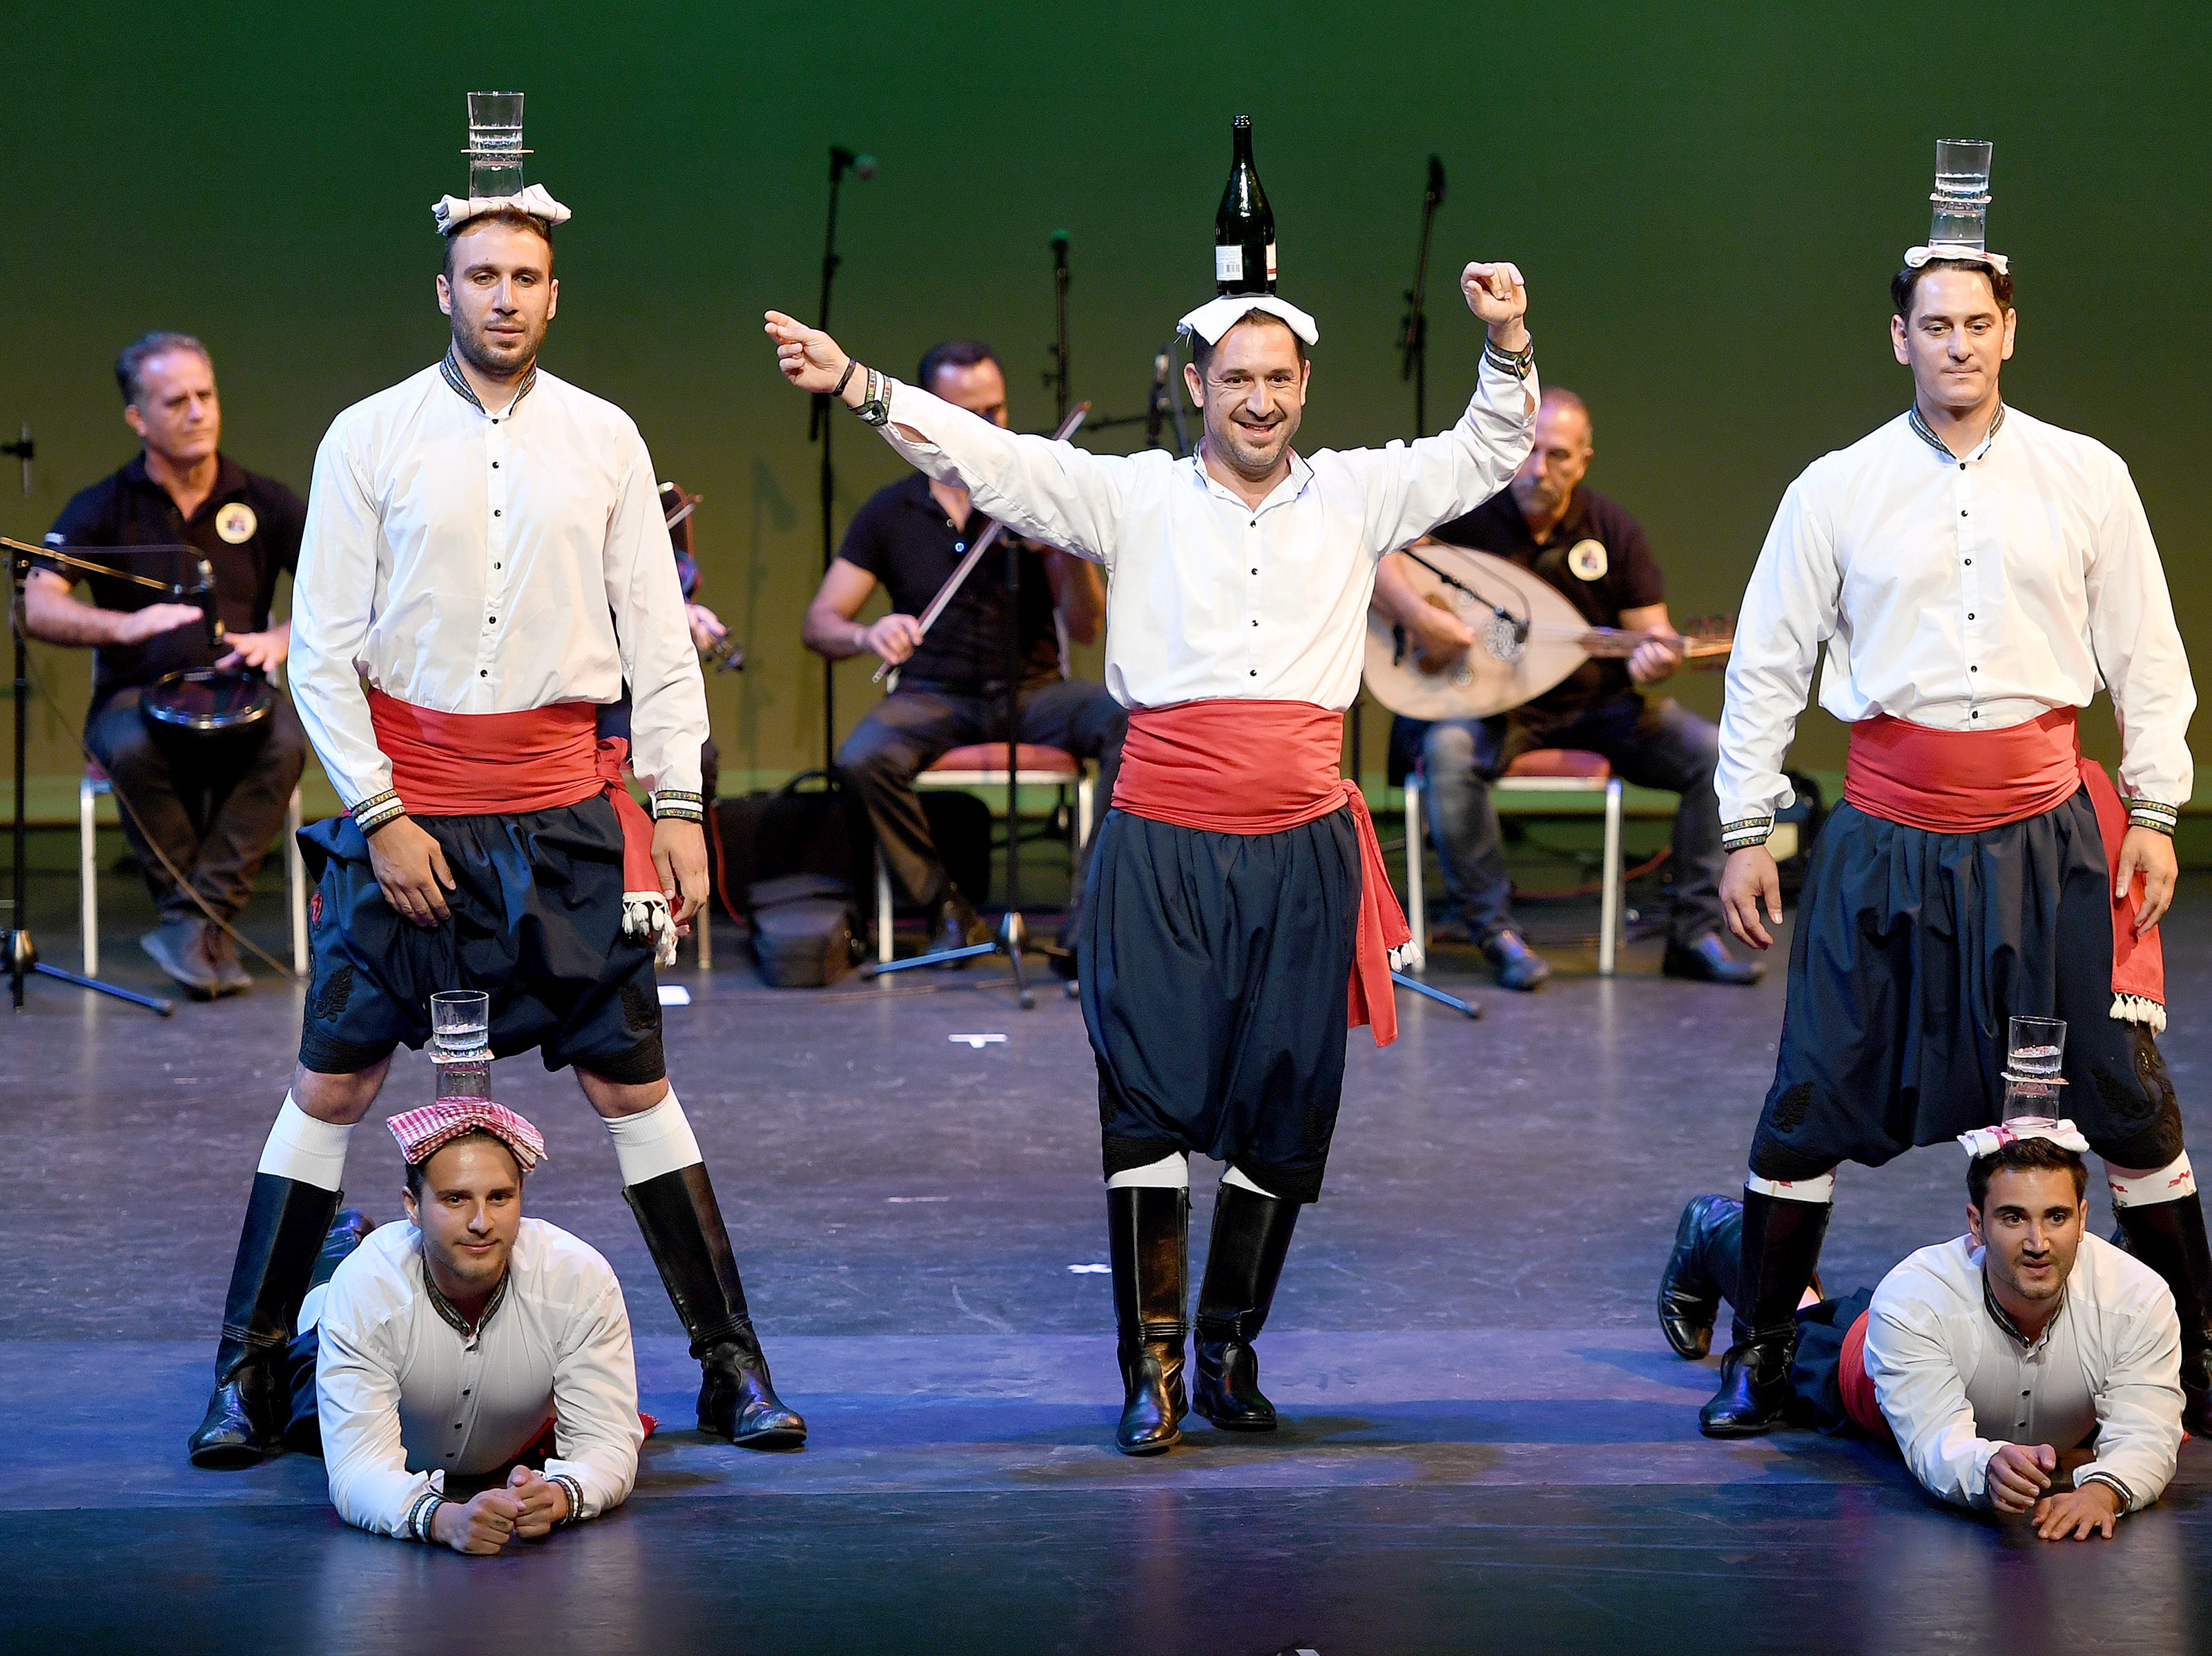 """Members of the Kyrenia Youth Centre Association from Northern Cyprus perform a """"glass dance"""" with water on their heads during a Folkmoot Festival performance at the Diana Wortham Theatre on Friday, Aug. 27, 2018."""